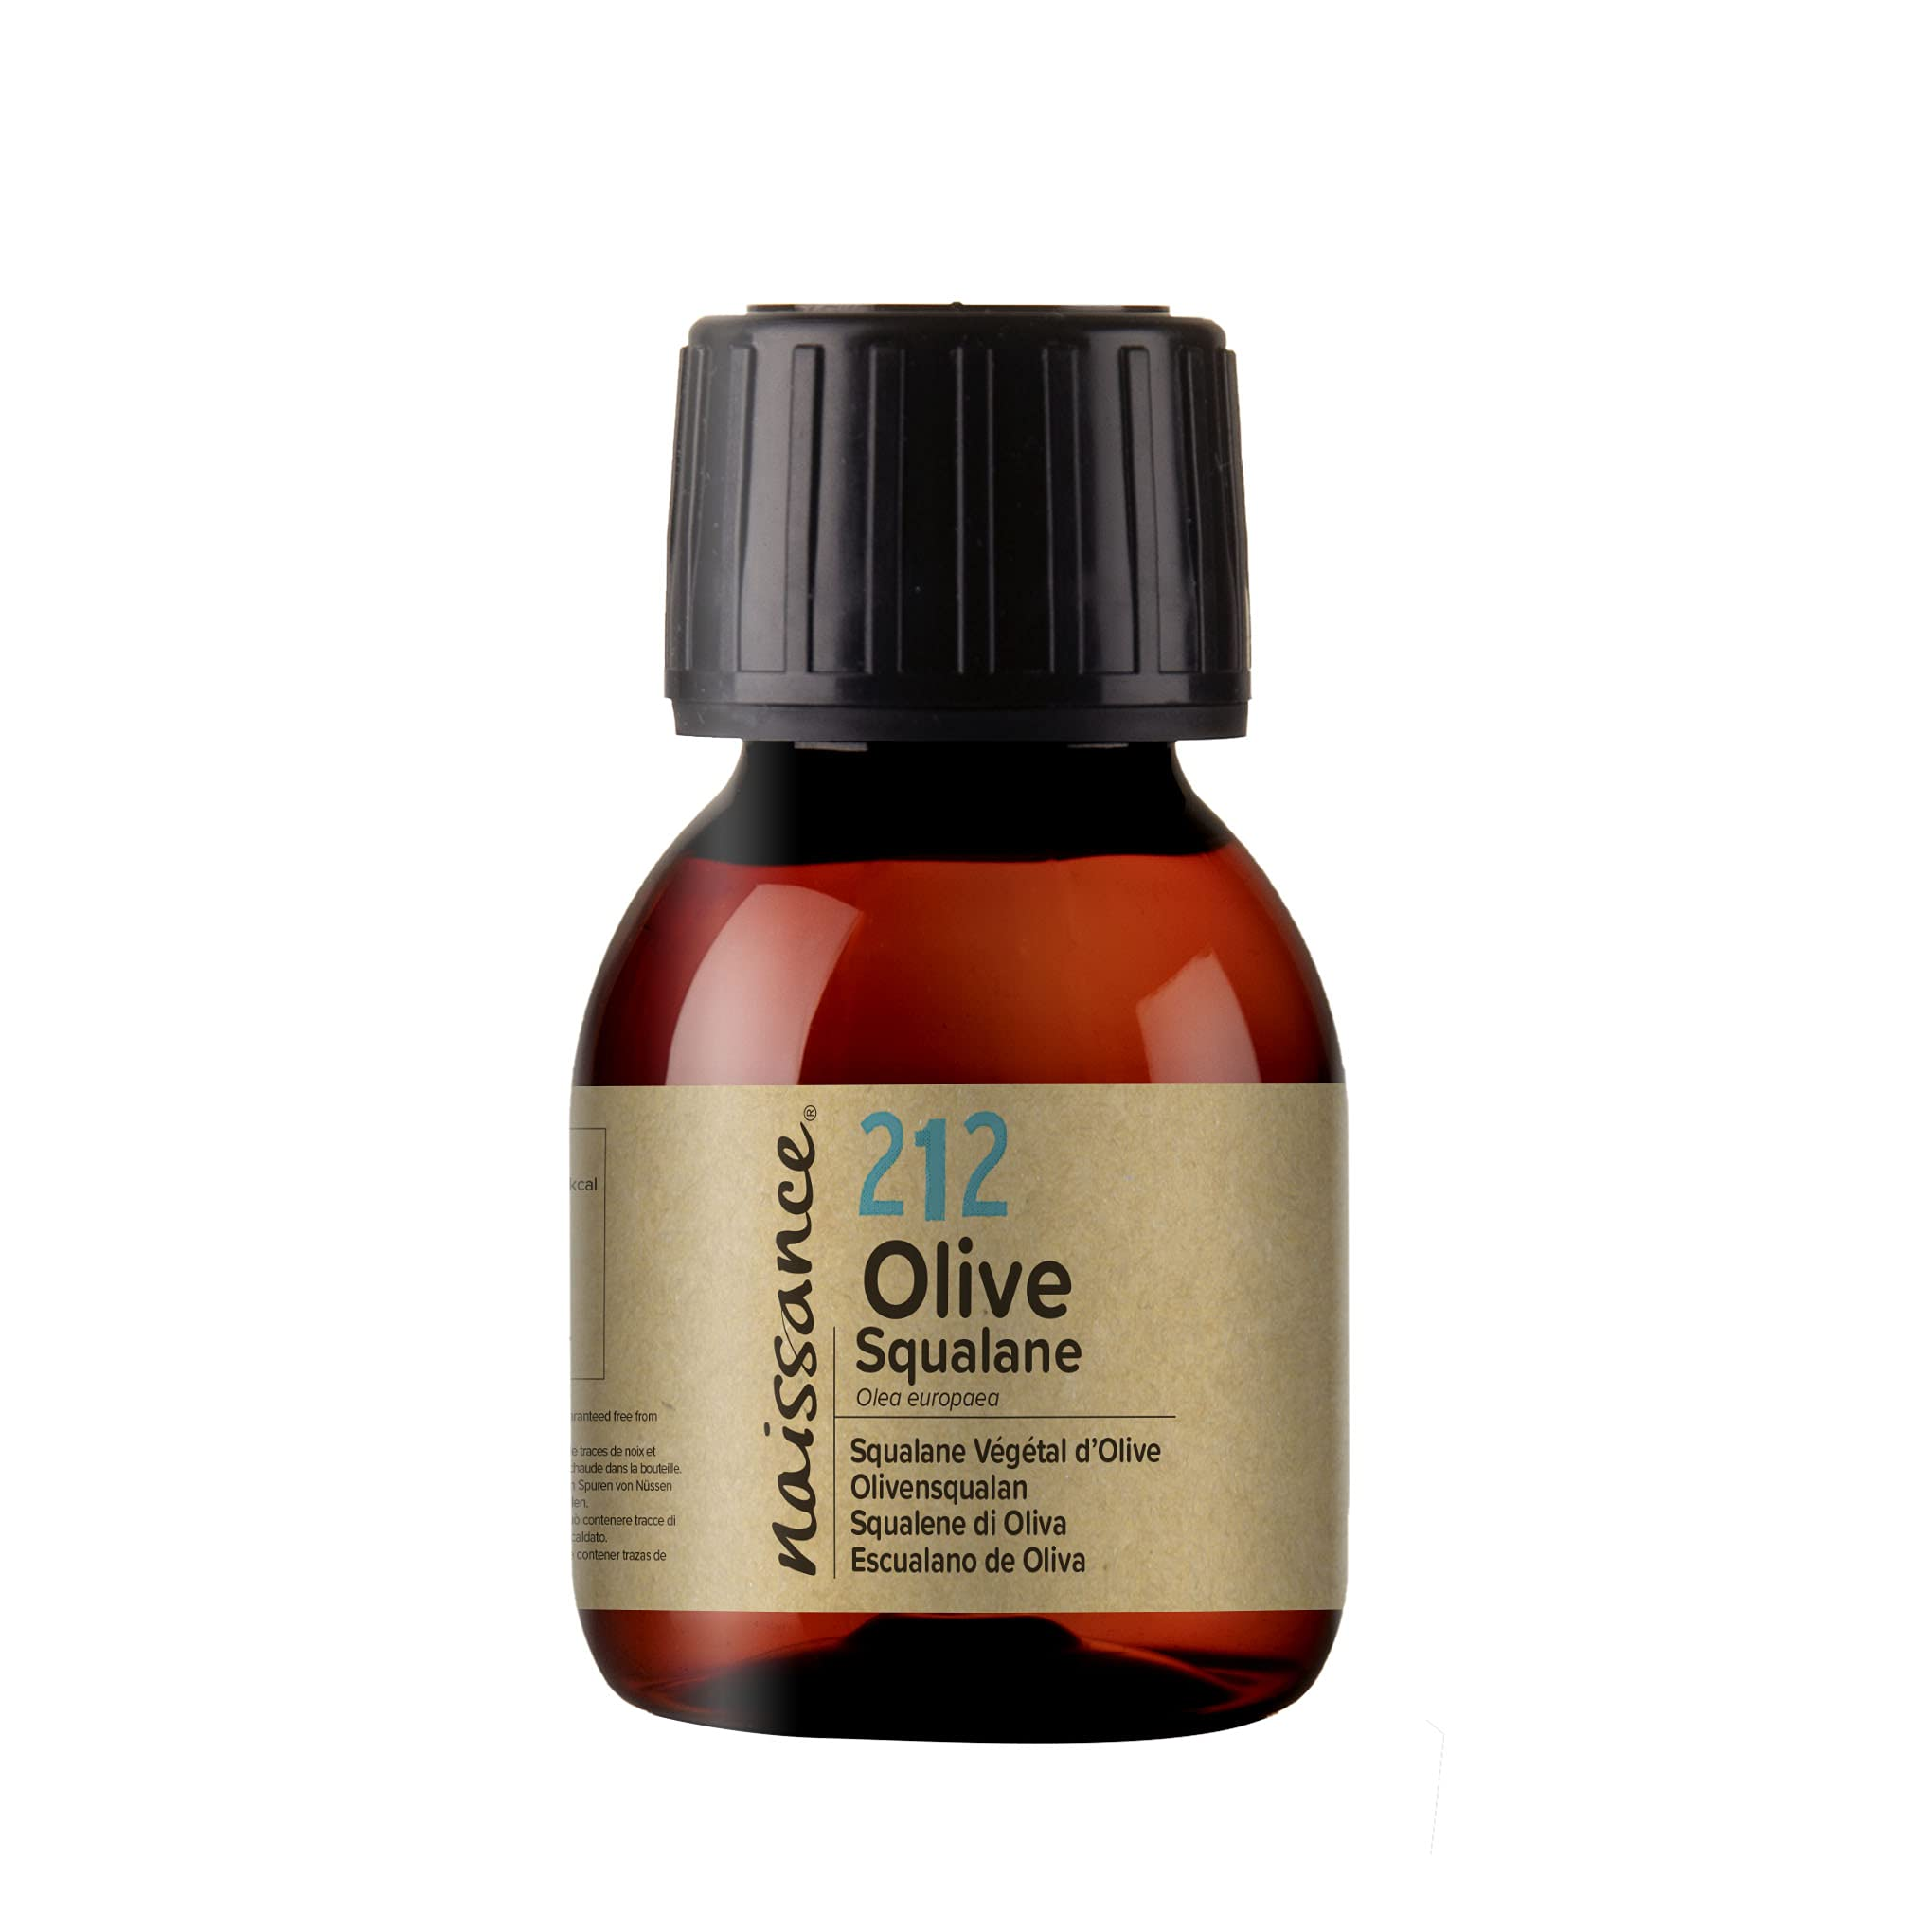 Naissance Pure Olive Squalane Oil 60ml - 100% Natural Plant Based, Face, Hair and Skin Oil Vegan Olive Derived